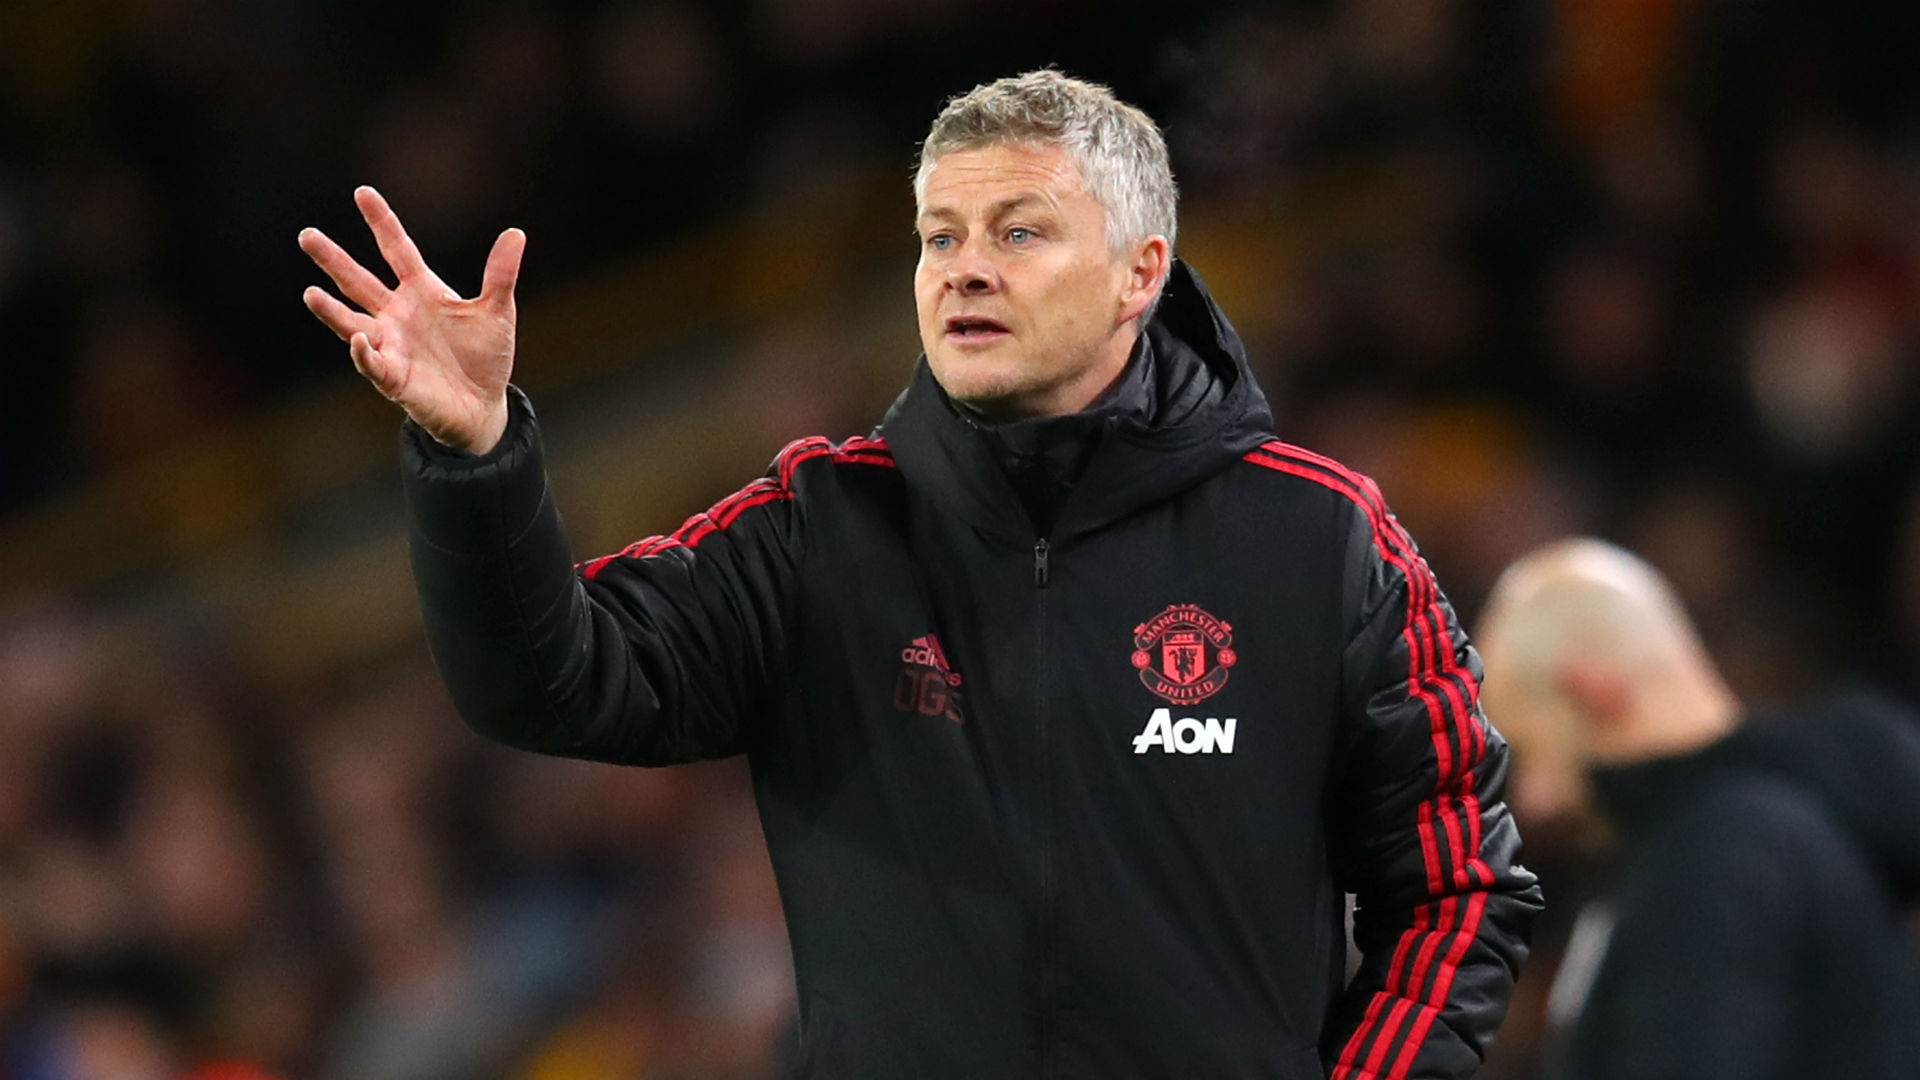 Wolves defeat a step backwards - Solskjaer